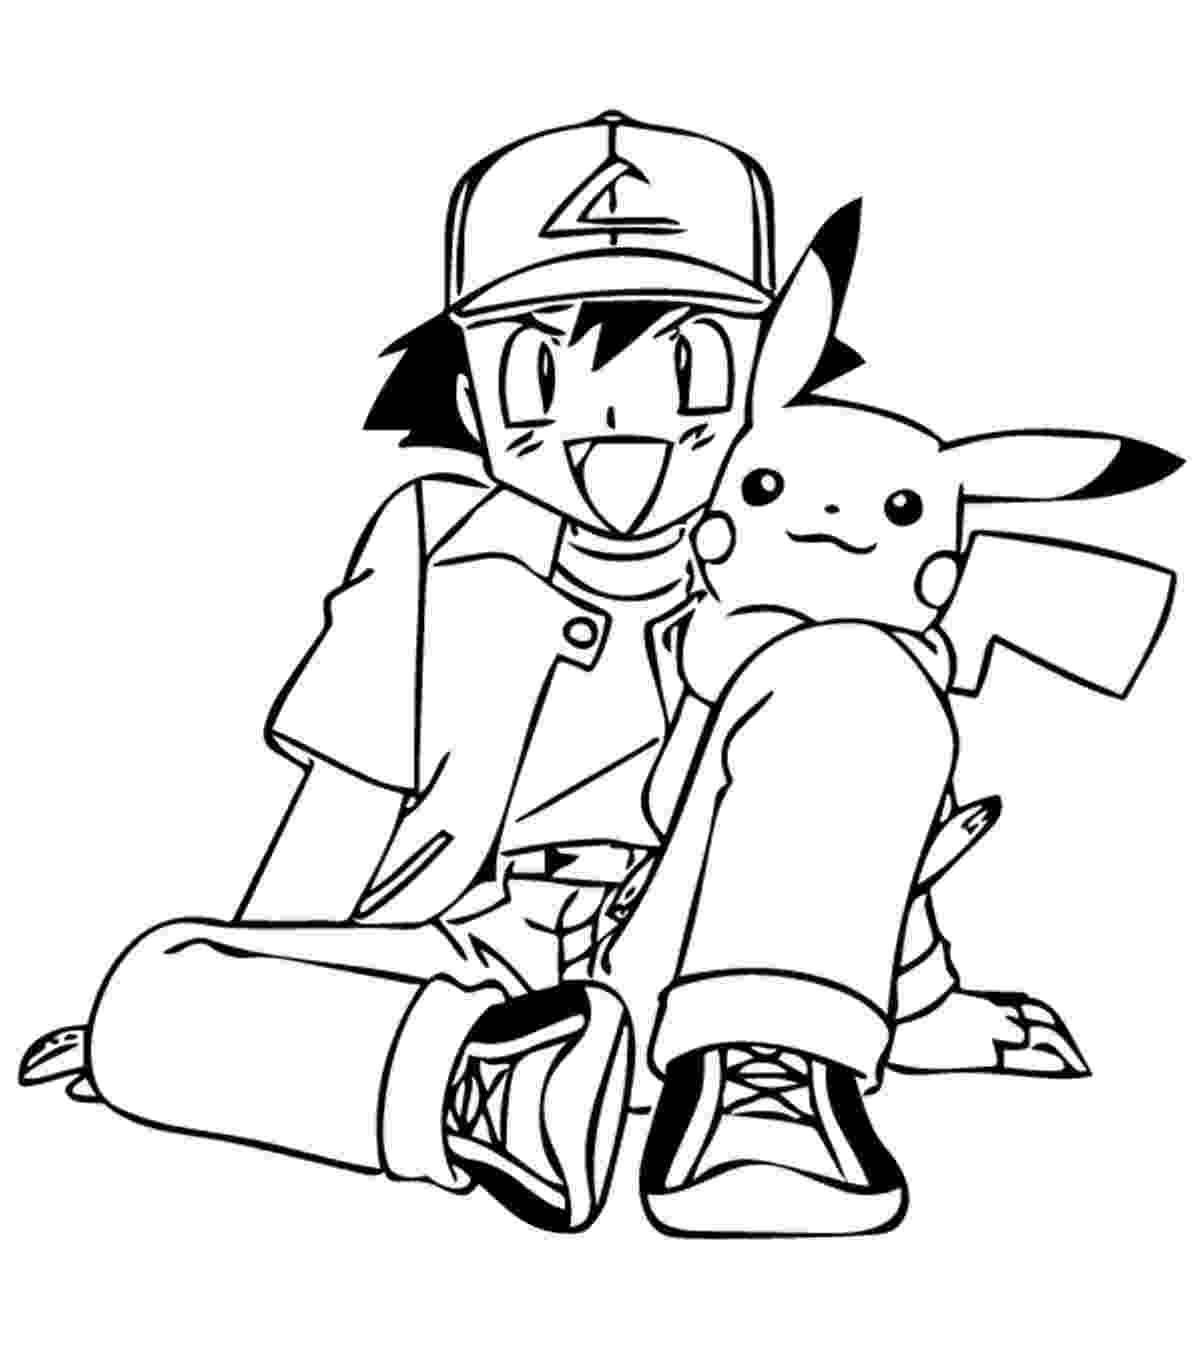 coloring pokemon pokemon coloring pages print and colorcom coloring pokemon